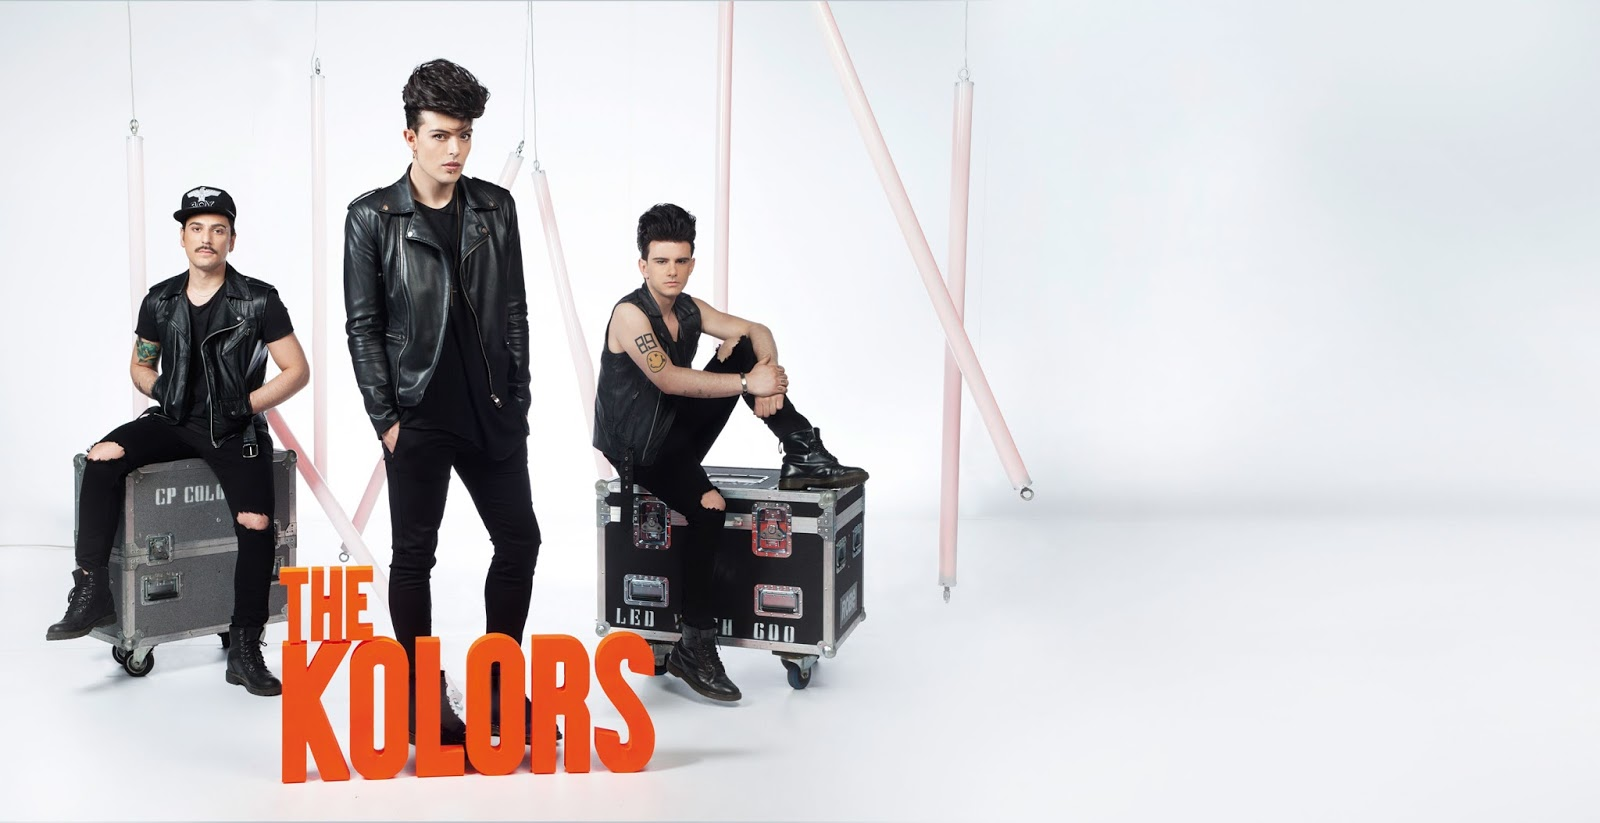 No More - The Kolors: testo, video e traduzione